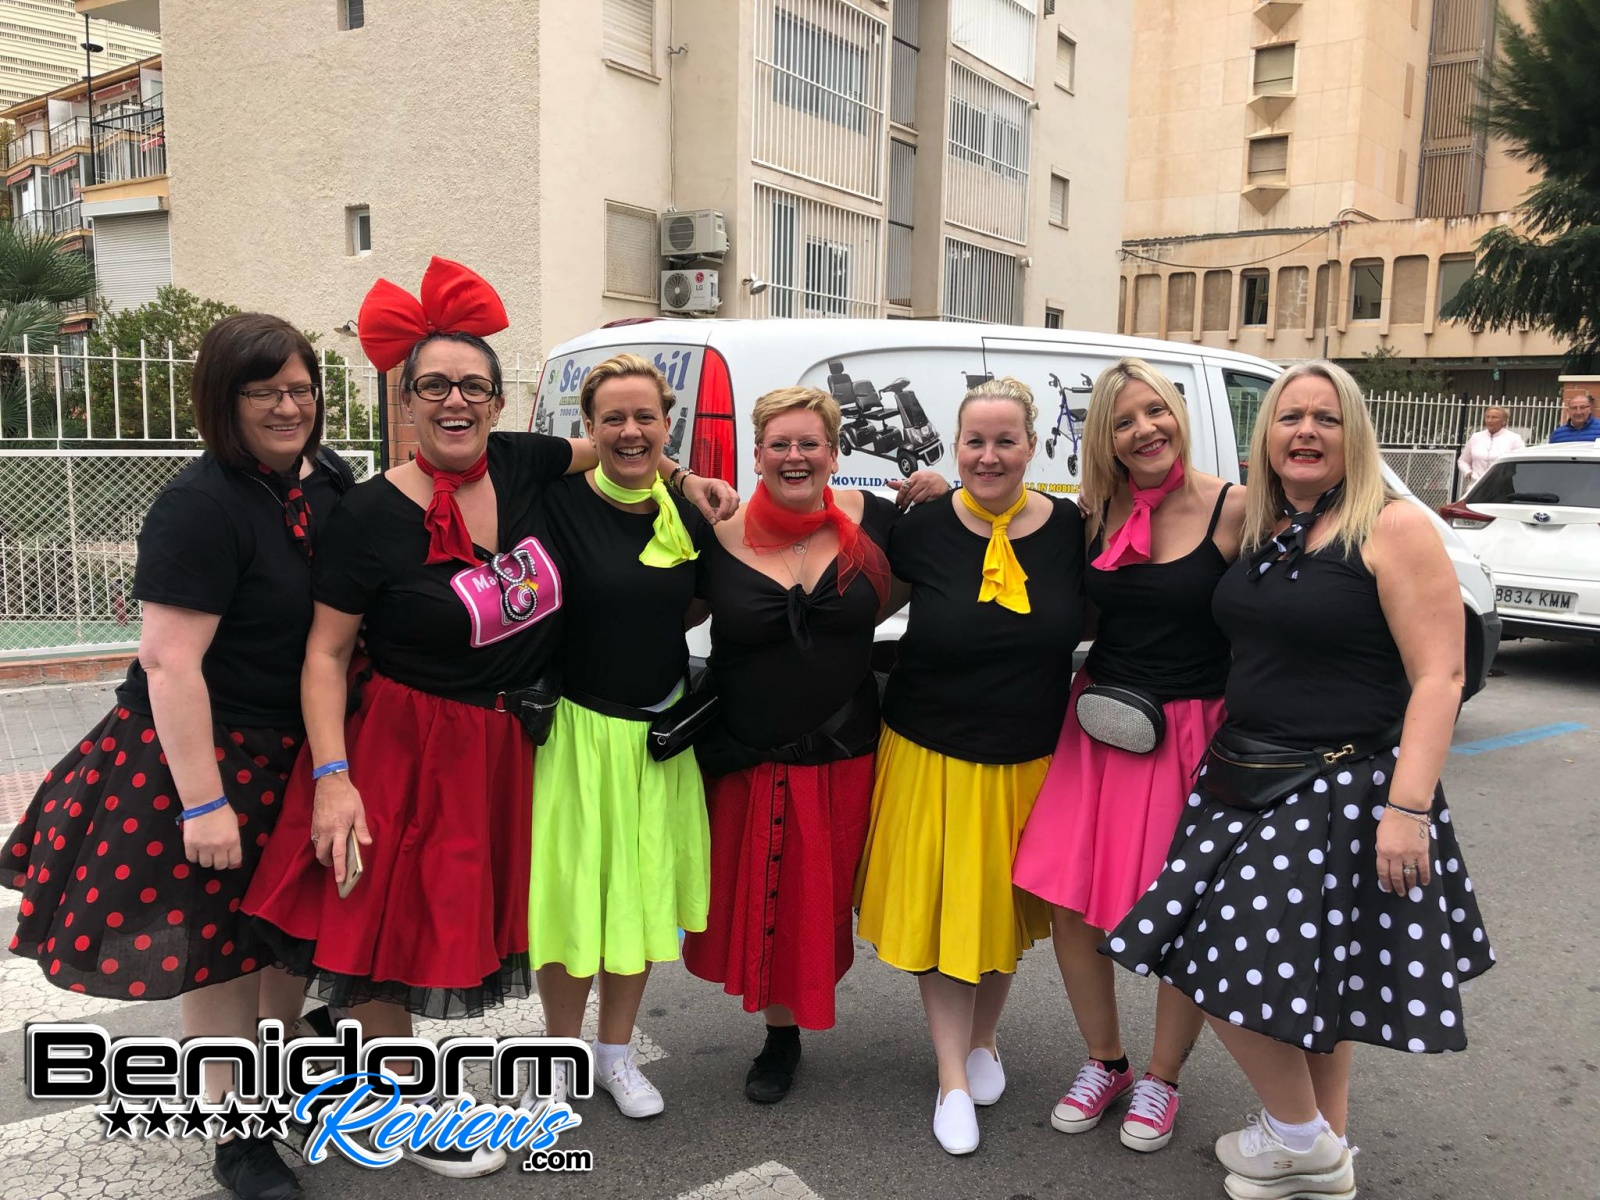 Benidorm-Fiestas-2019-Fancy-Dress-38